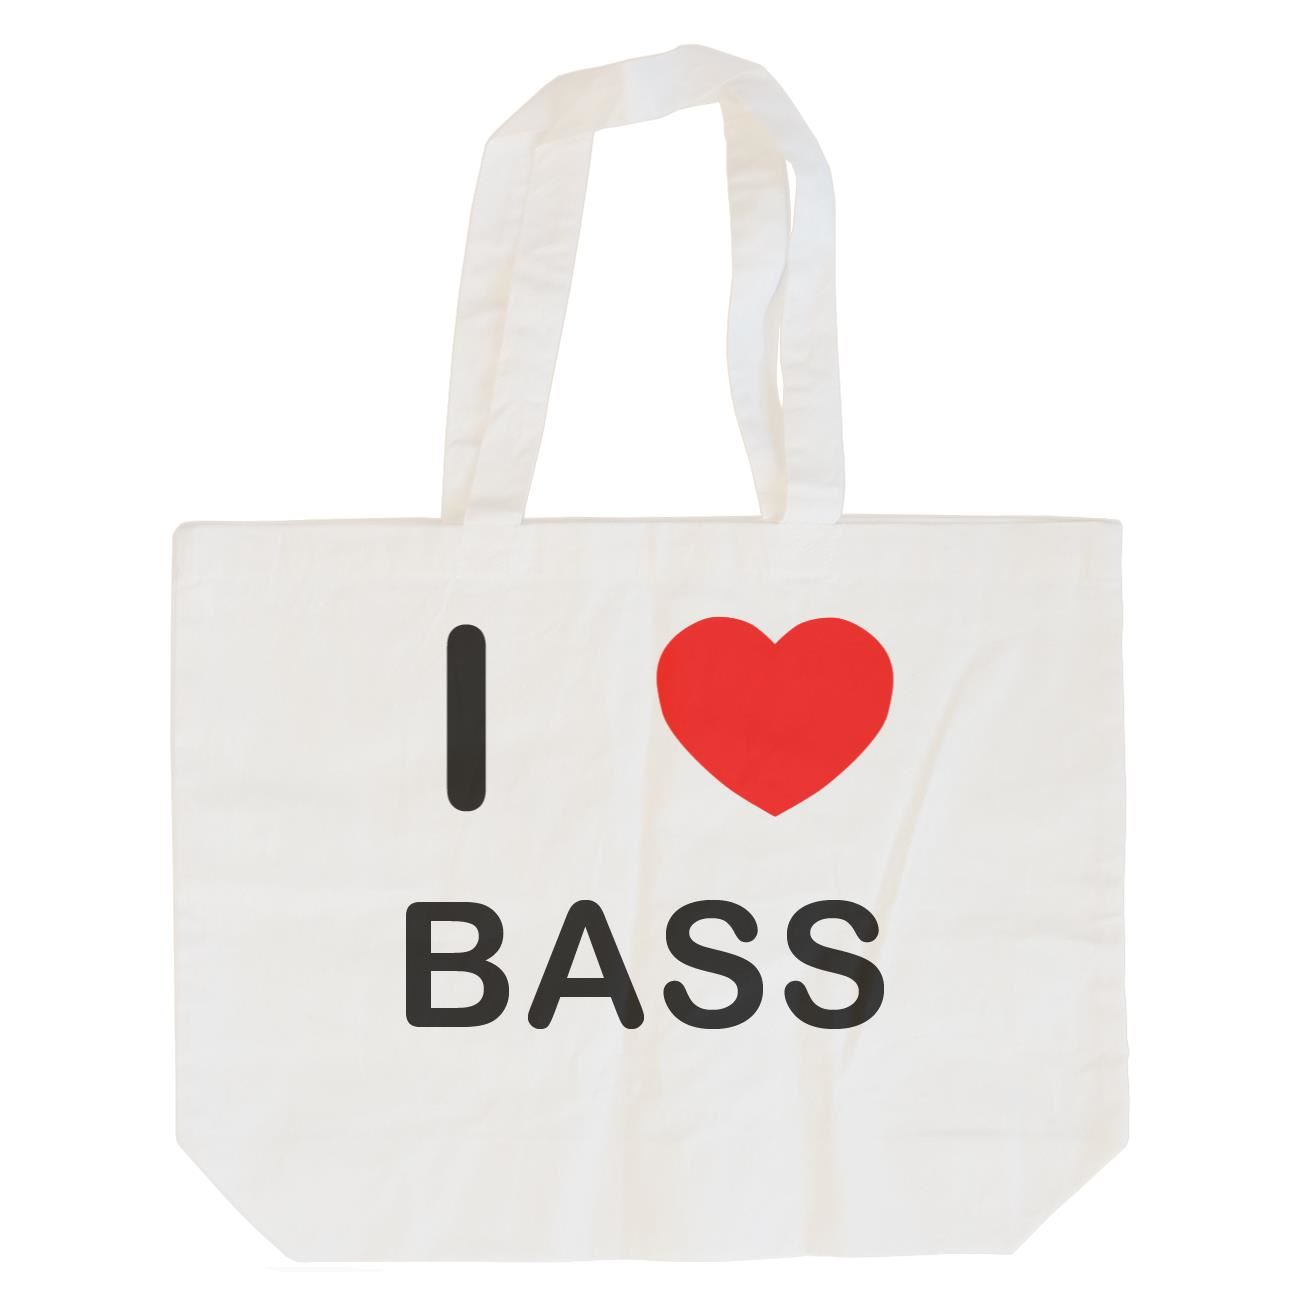 I Love Bass - Cotton Bag | Size choice Tote, Shopper or Sling